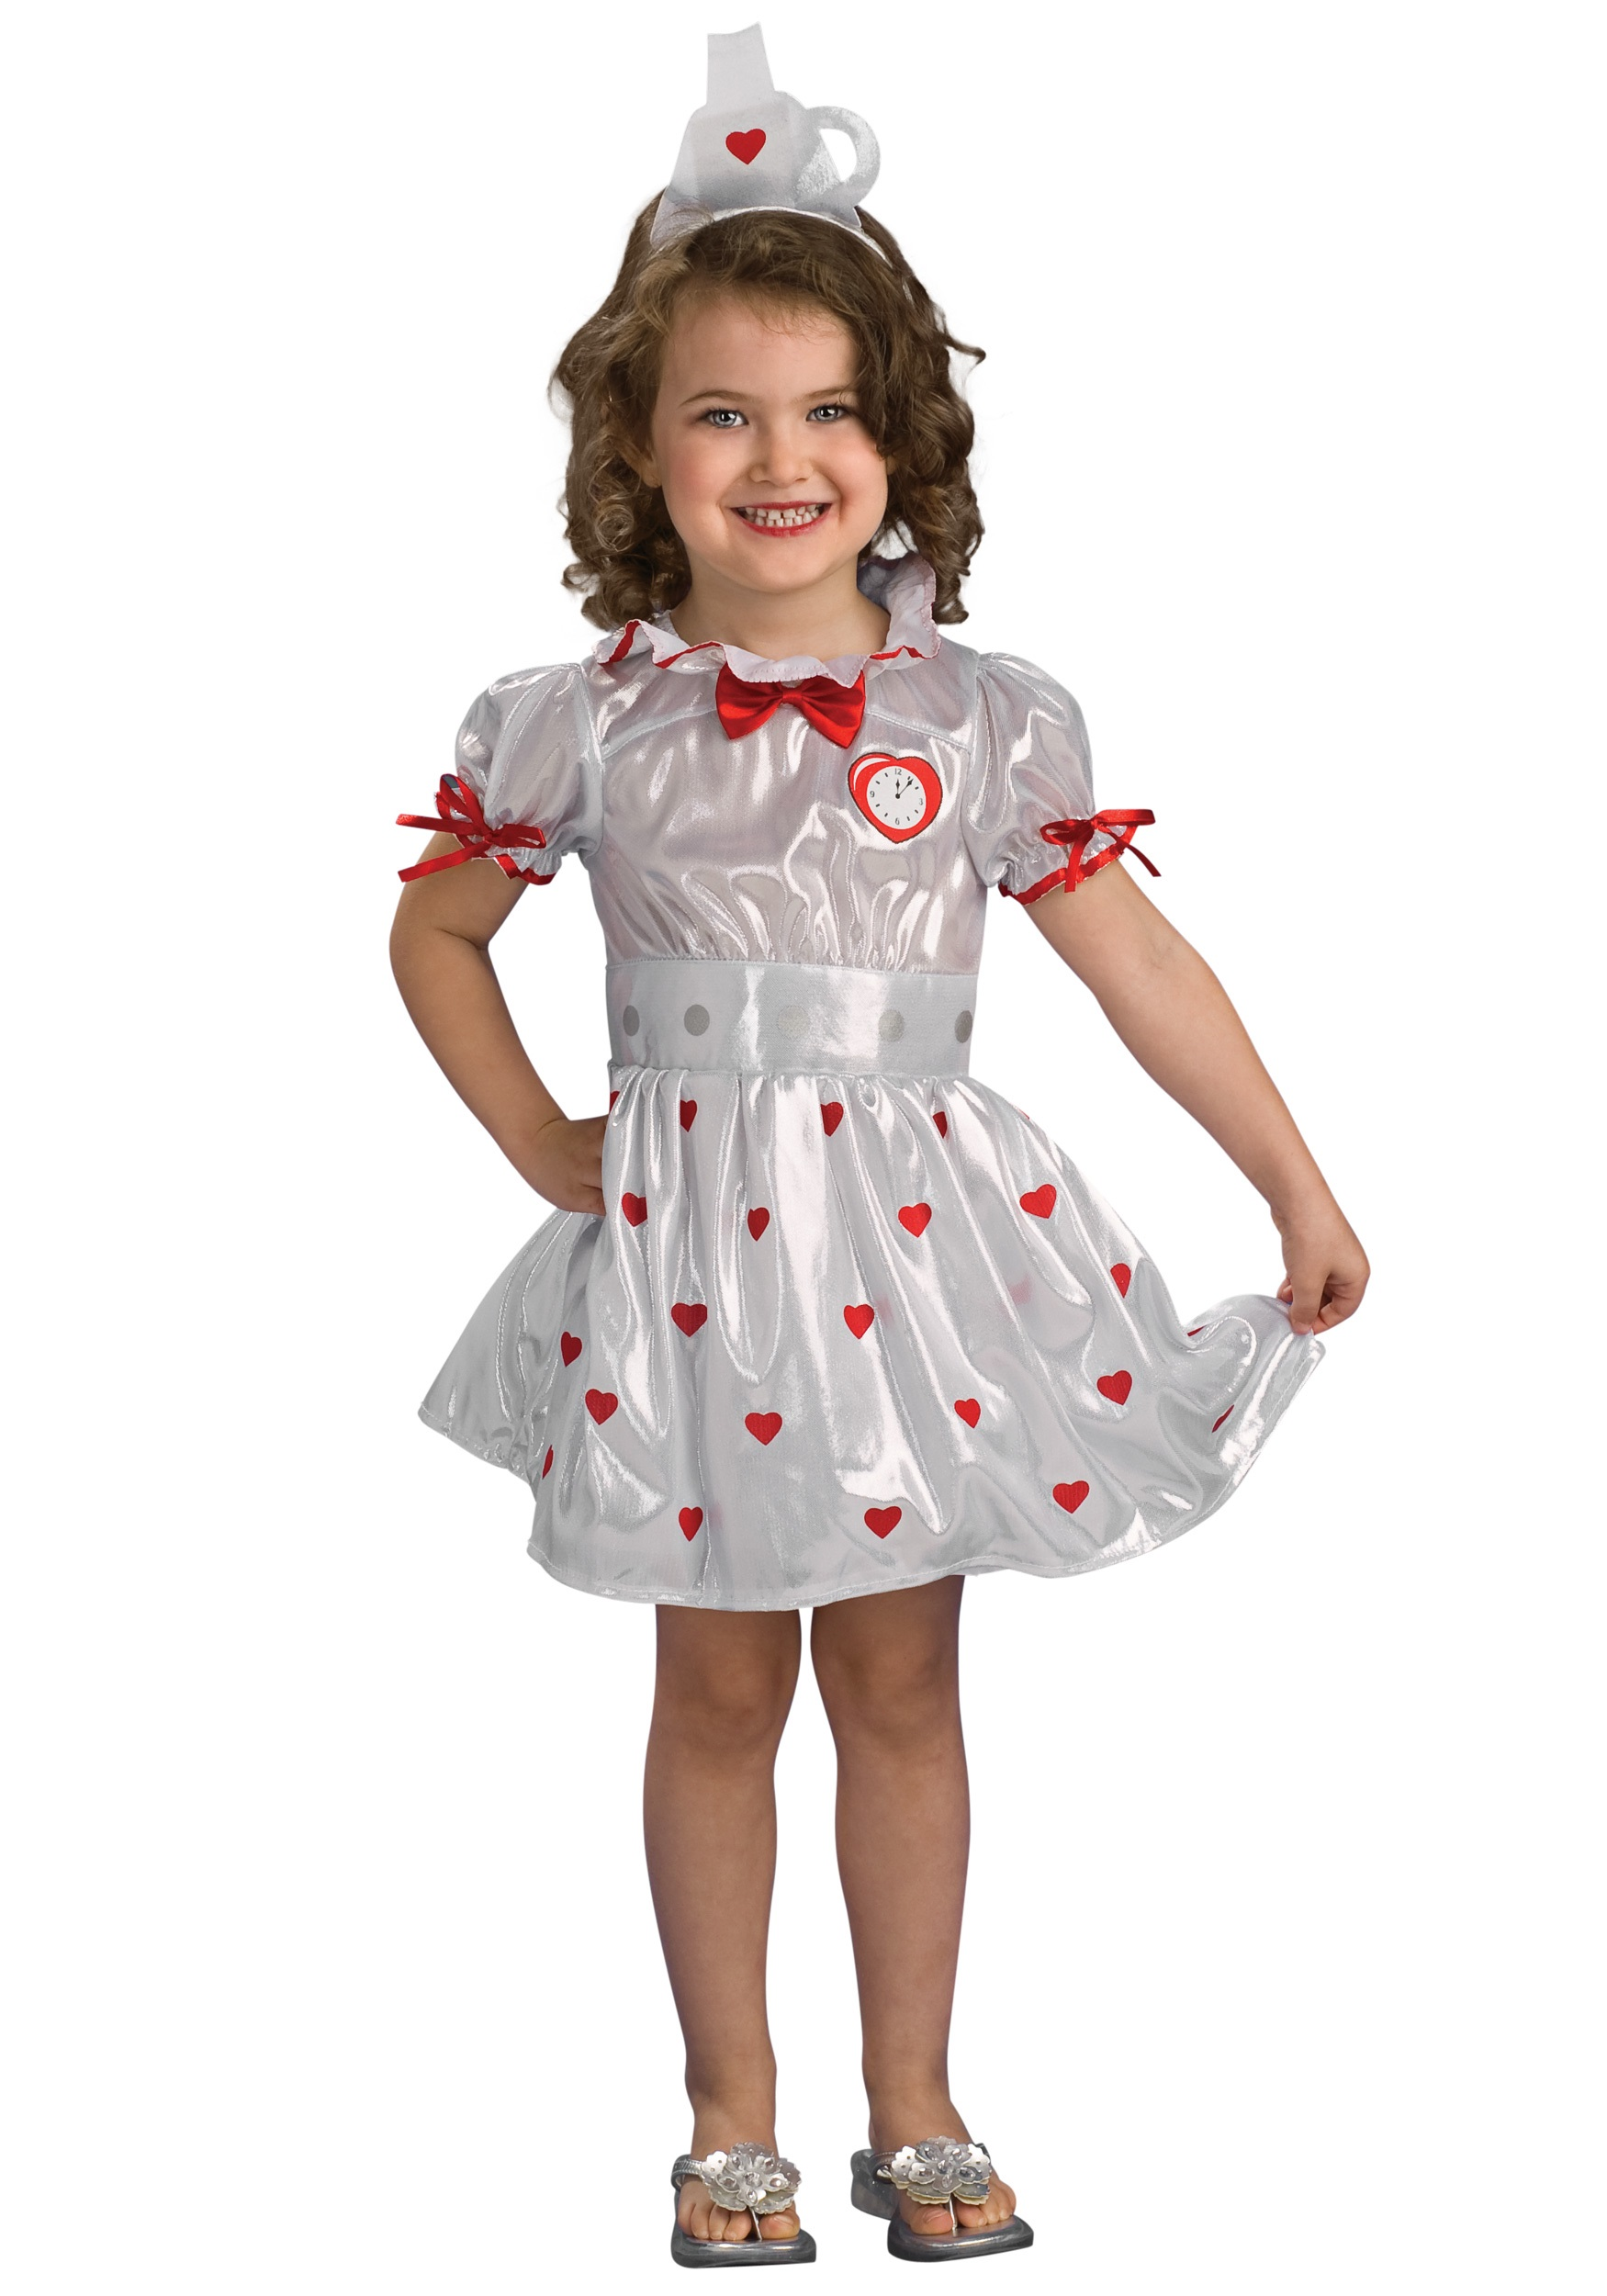 Toddler Tin Girl Costume Halloween Costumes